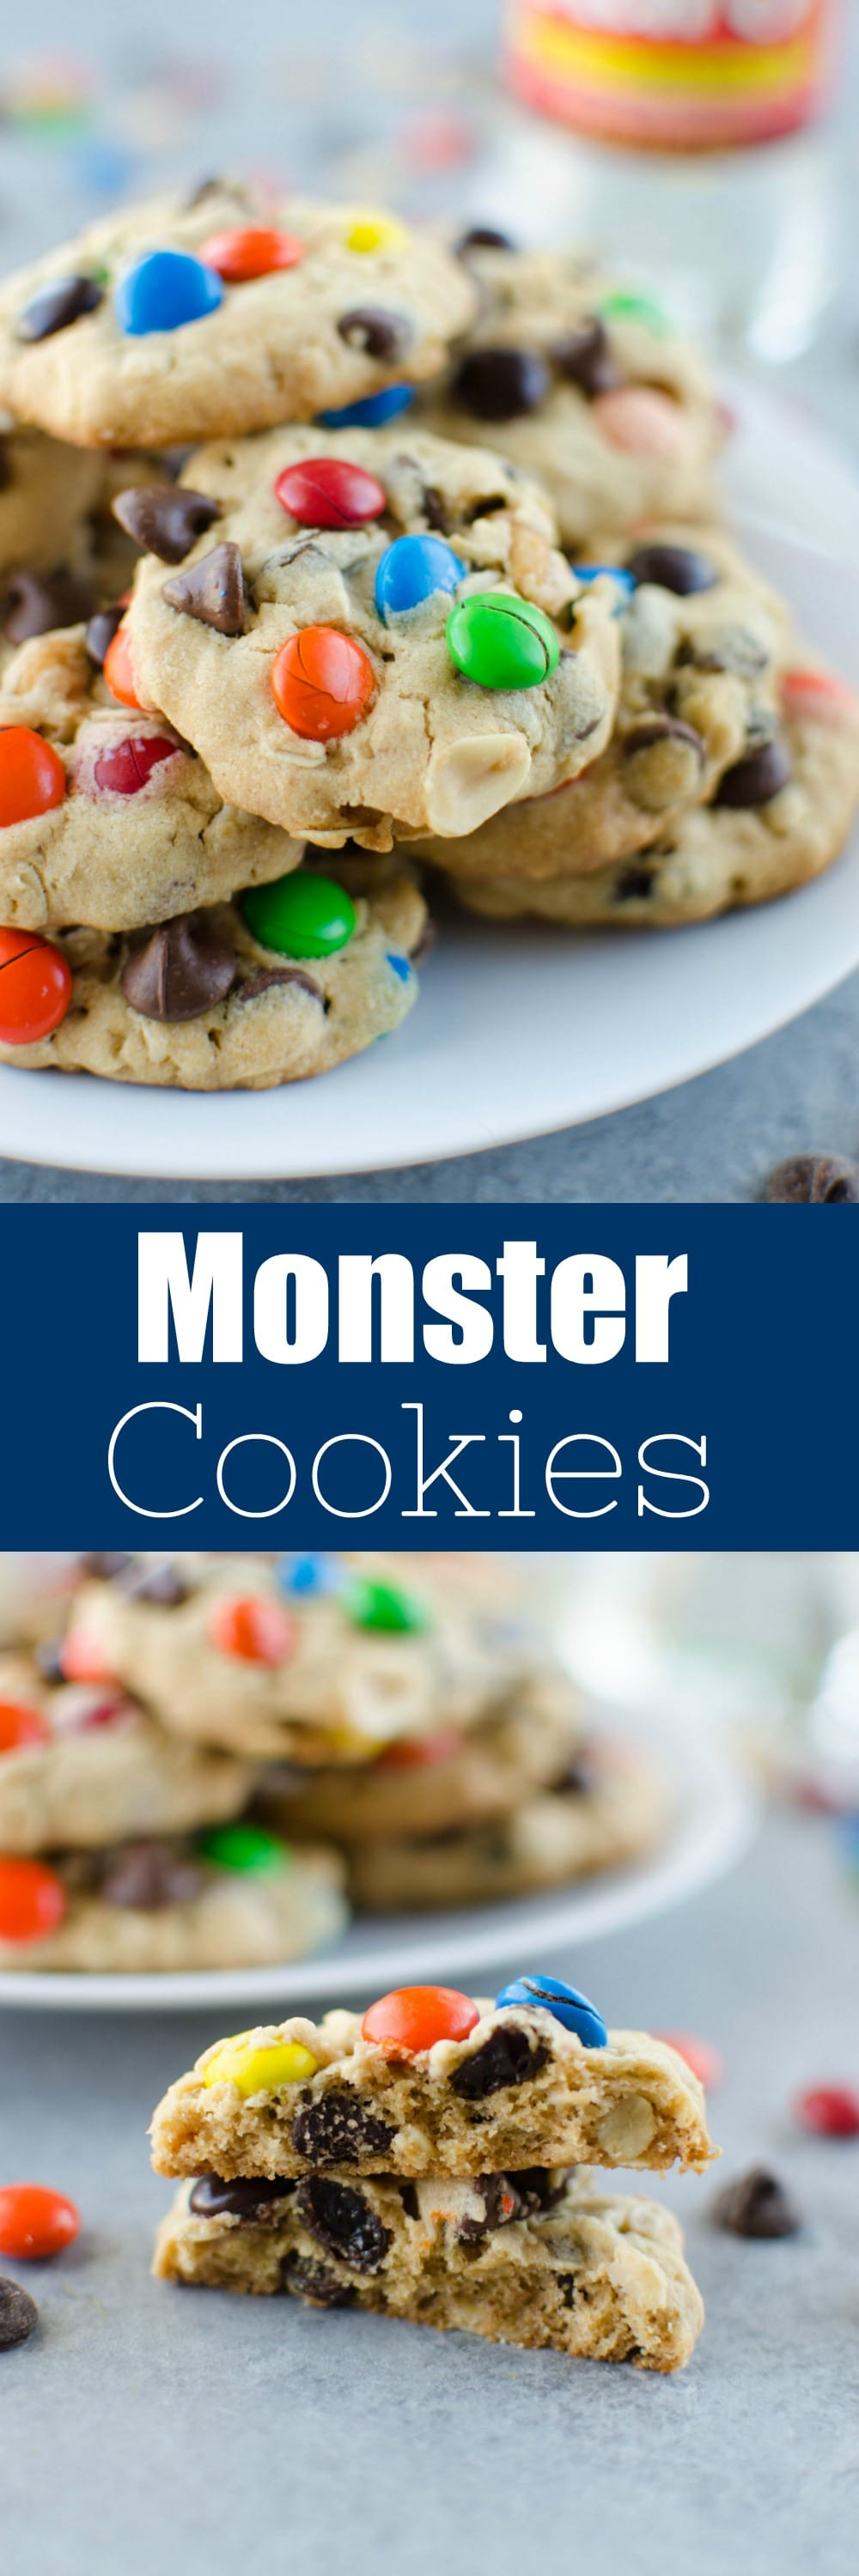 Chewy Monster Cookies - soft and chewy peanut butter cookies filled with oats, chocolate chips, peanuts, raisins, and M&Ms!